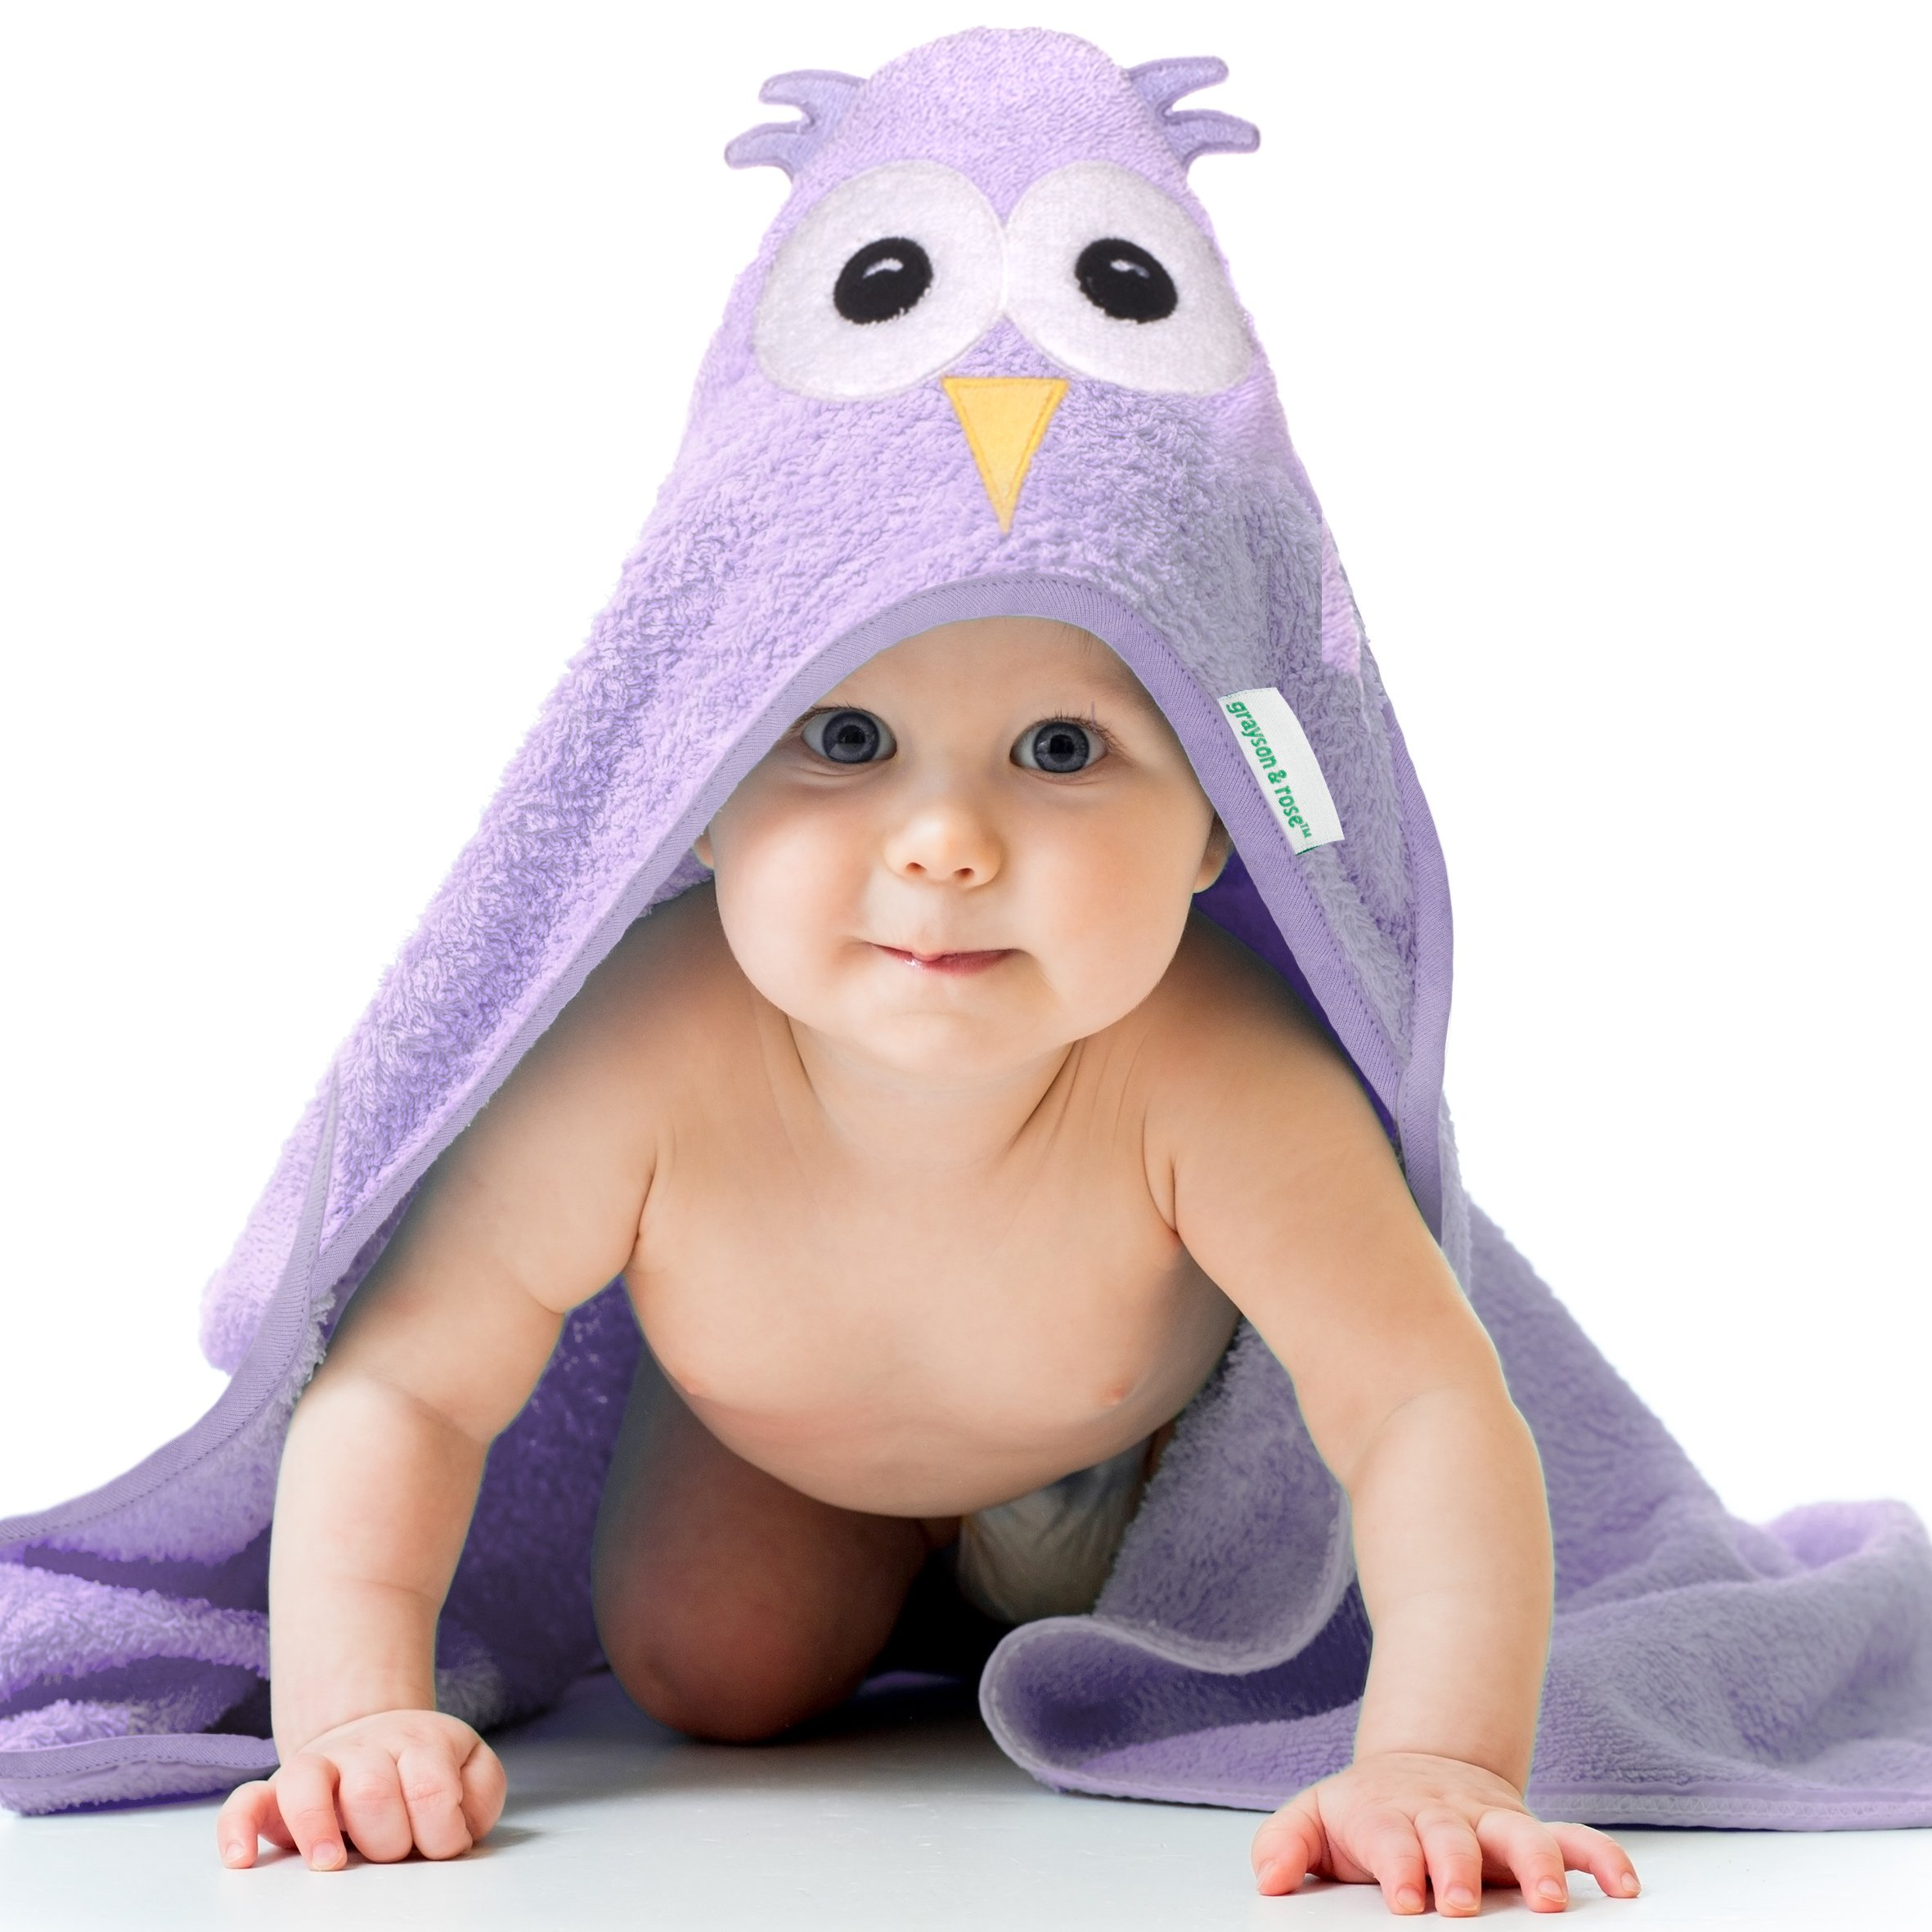 Cute Hooded Towel, Large, Thick, 100% Cotton, Baby Shower Gifts, Grayson and Rose by Grayson and Rose